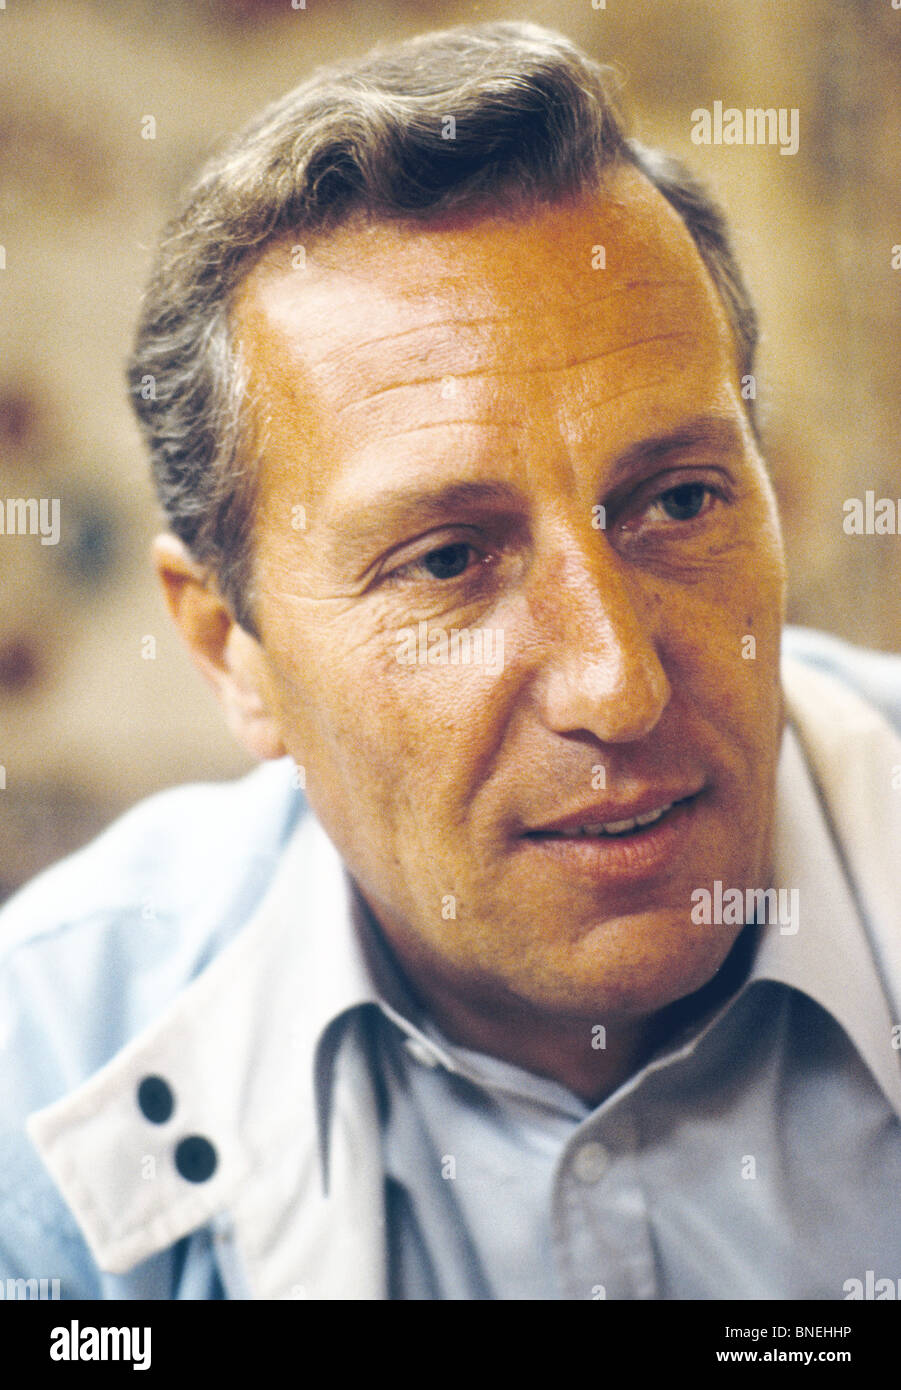 Frederick Forsyth, CBE (born 25 August 1938) is an English author and occasional political commentator. - Stock Image